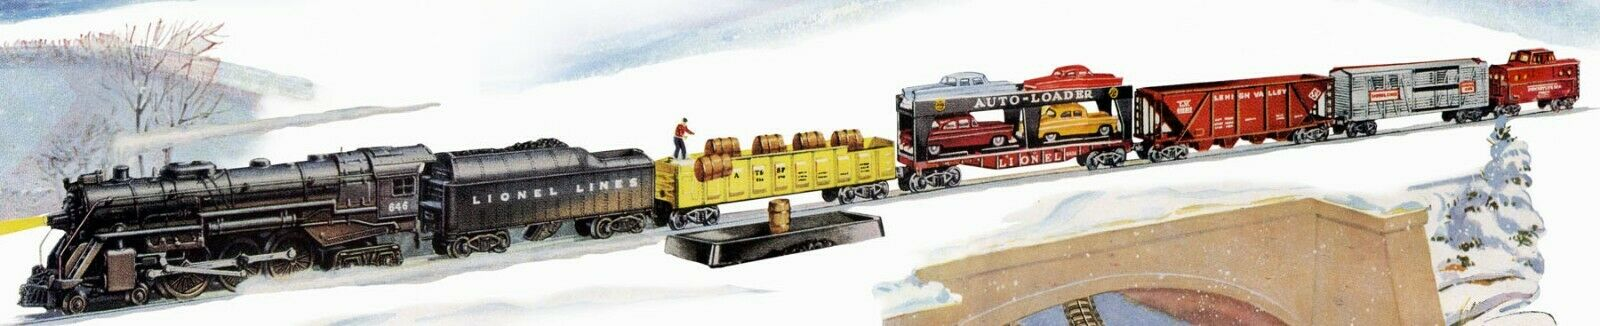 Lionel 638329 Lionel  2261W Freight Hauler Ssquadra set.  Bre nuovo from dealer